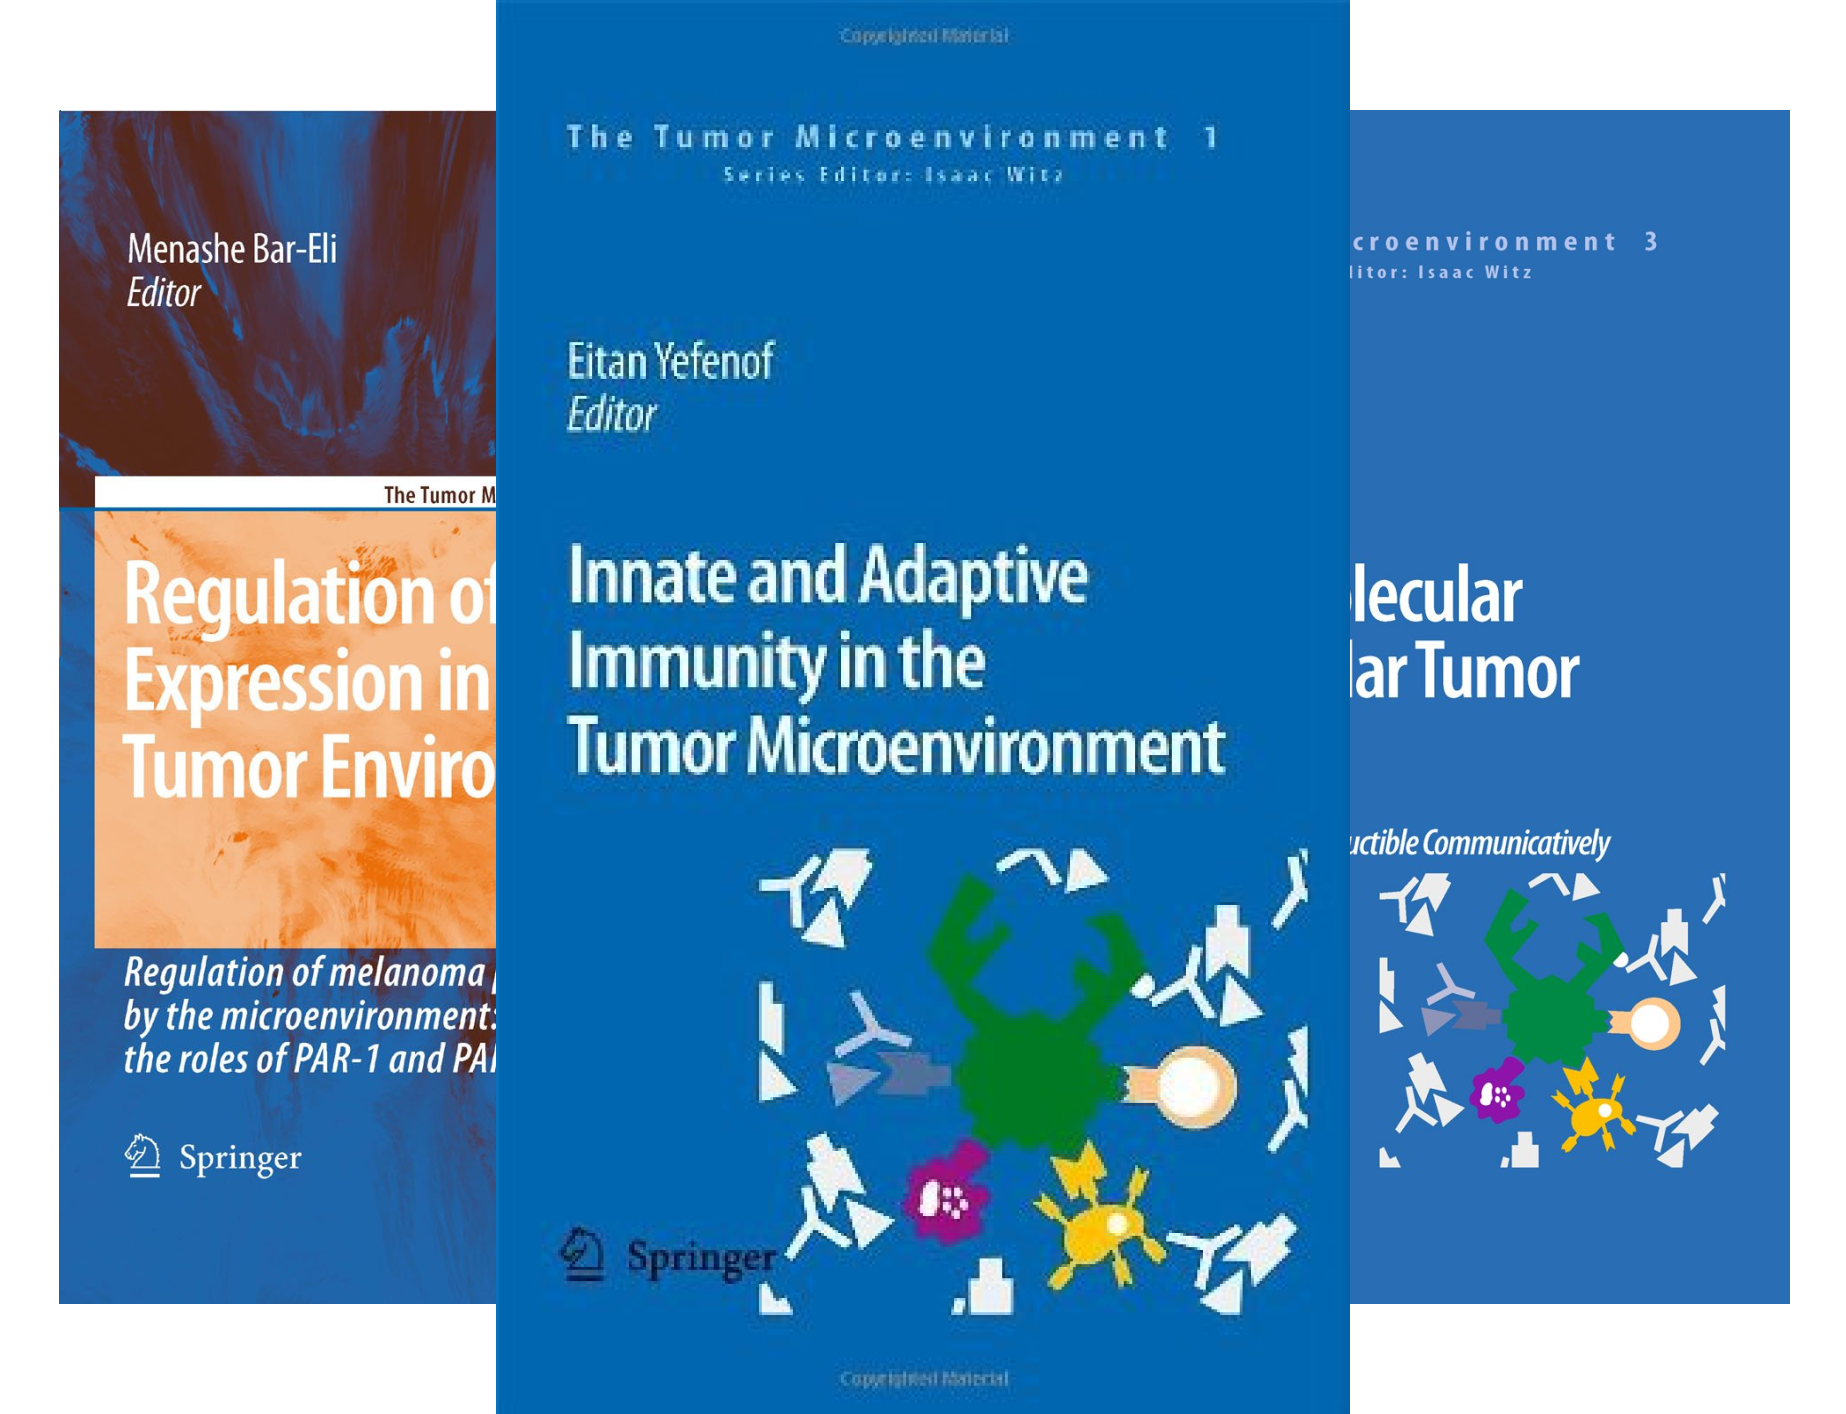 The Tumor Microenvironment (5 Book Series)